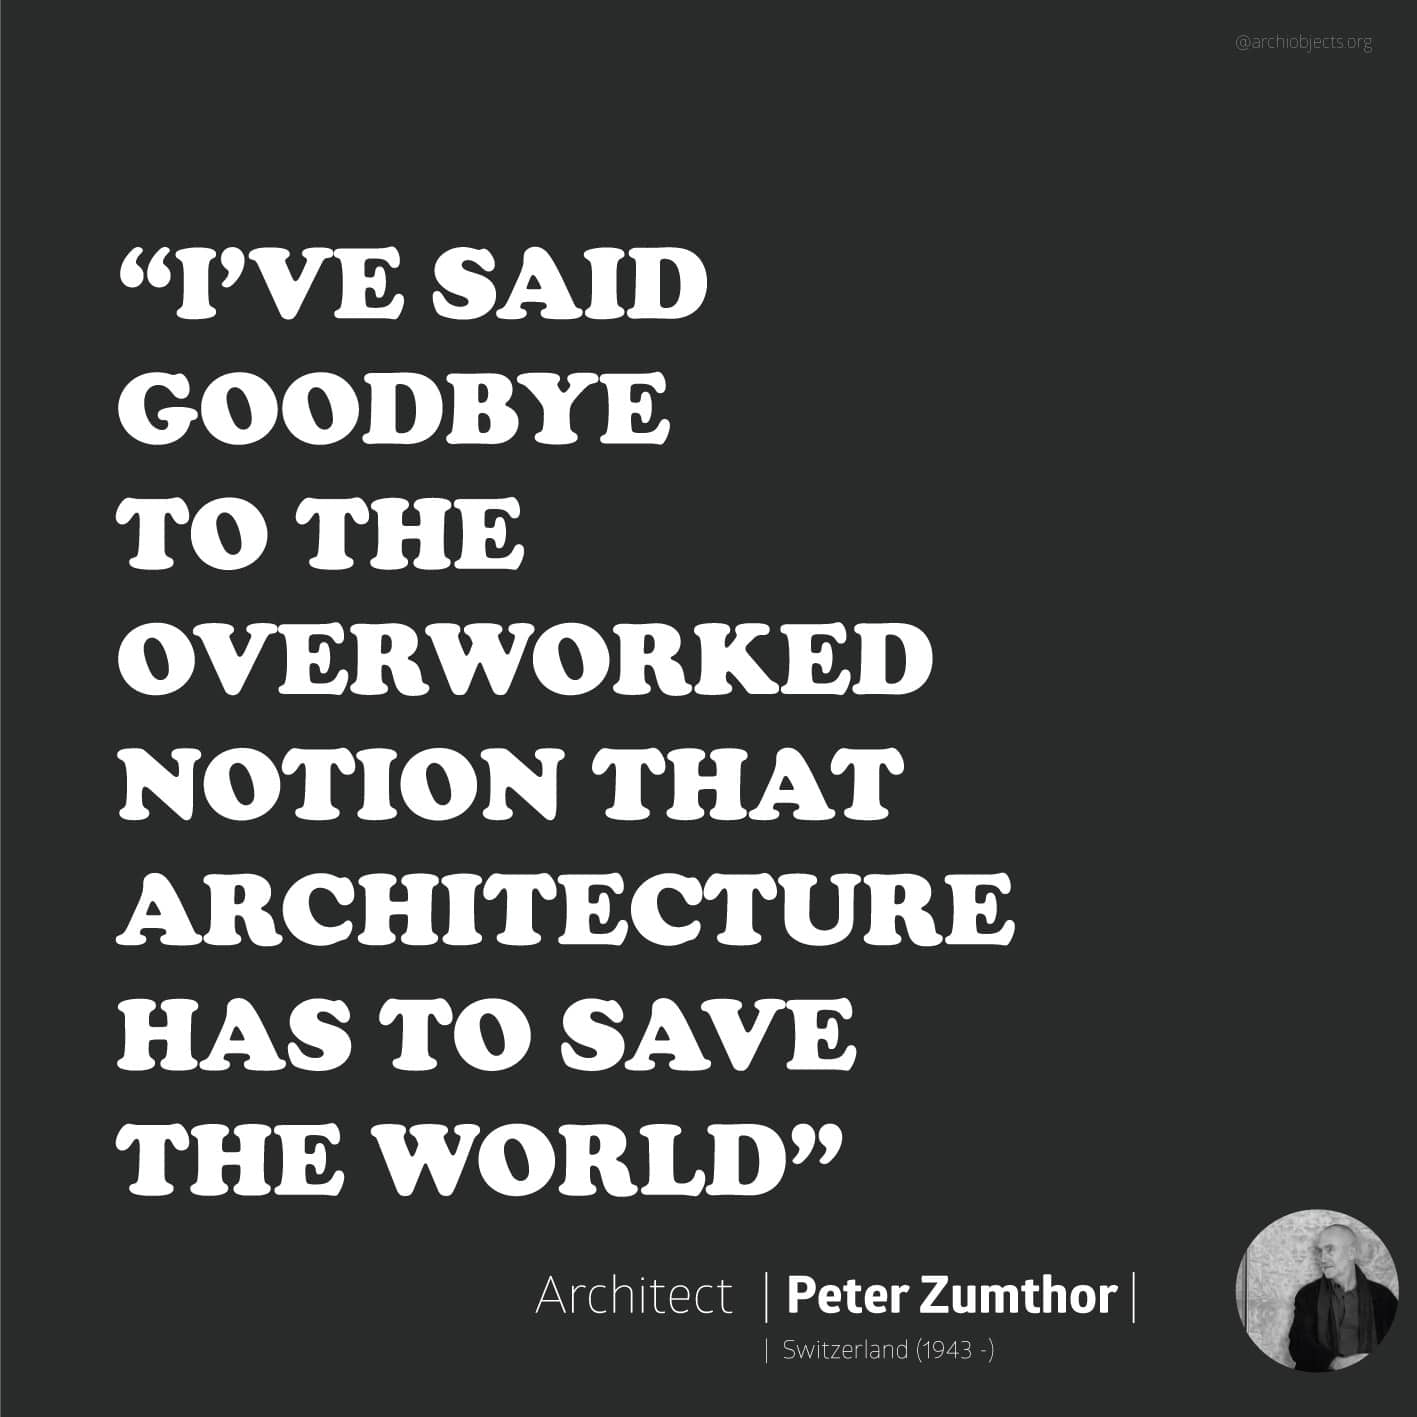 peter zumthor Architectural Quotes - Worth spreading Architects' voice